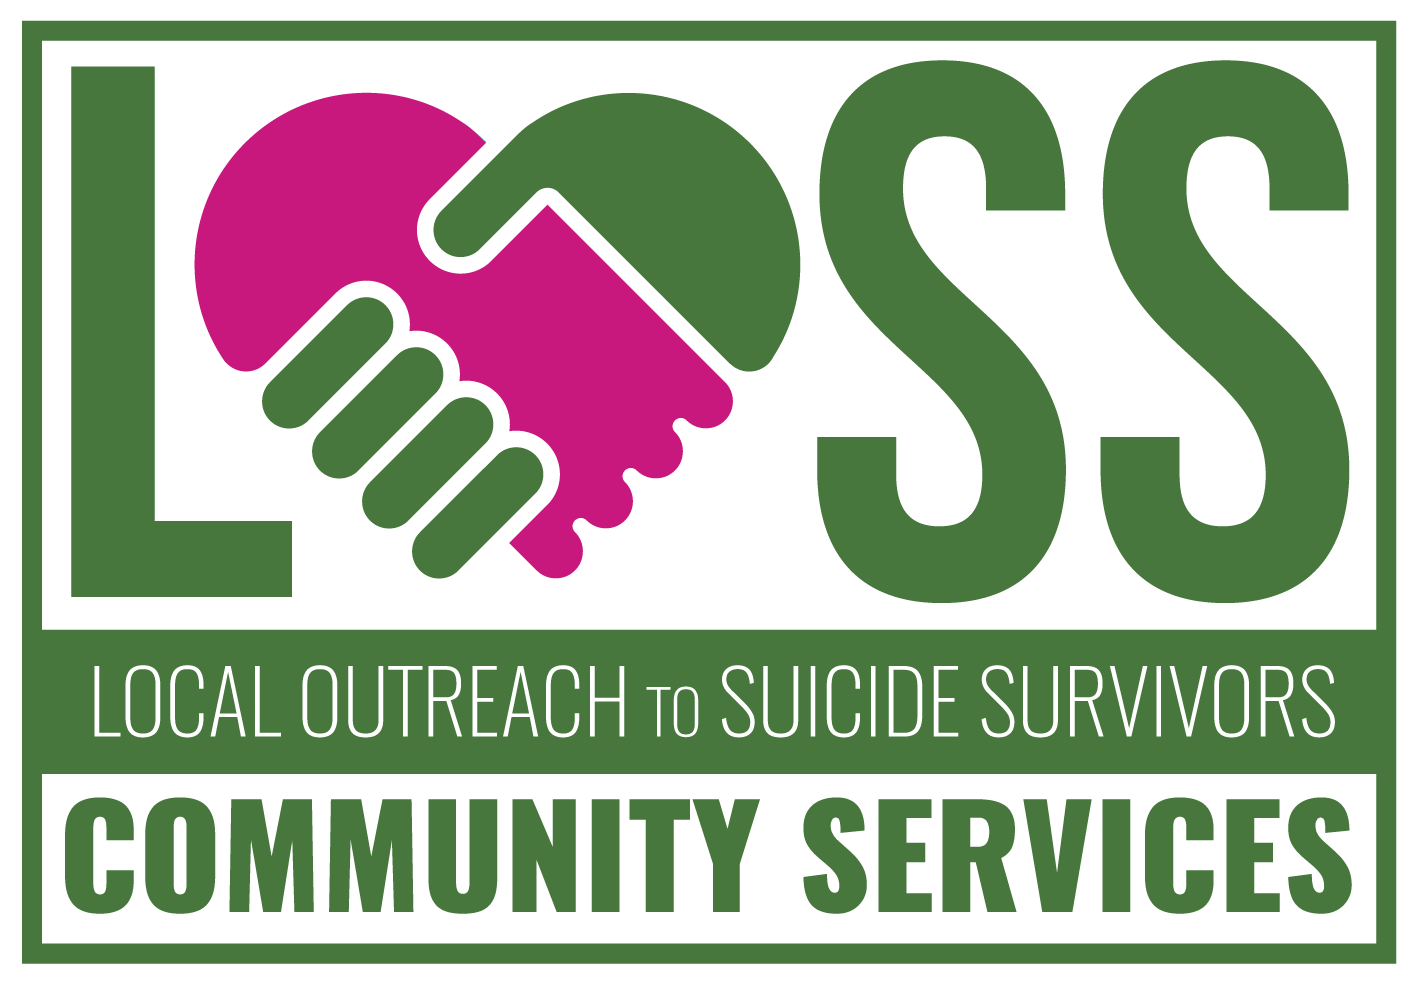 LOSS Community Services